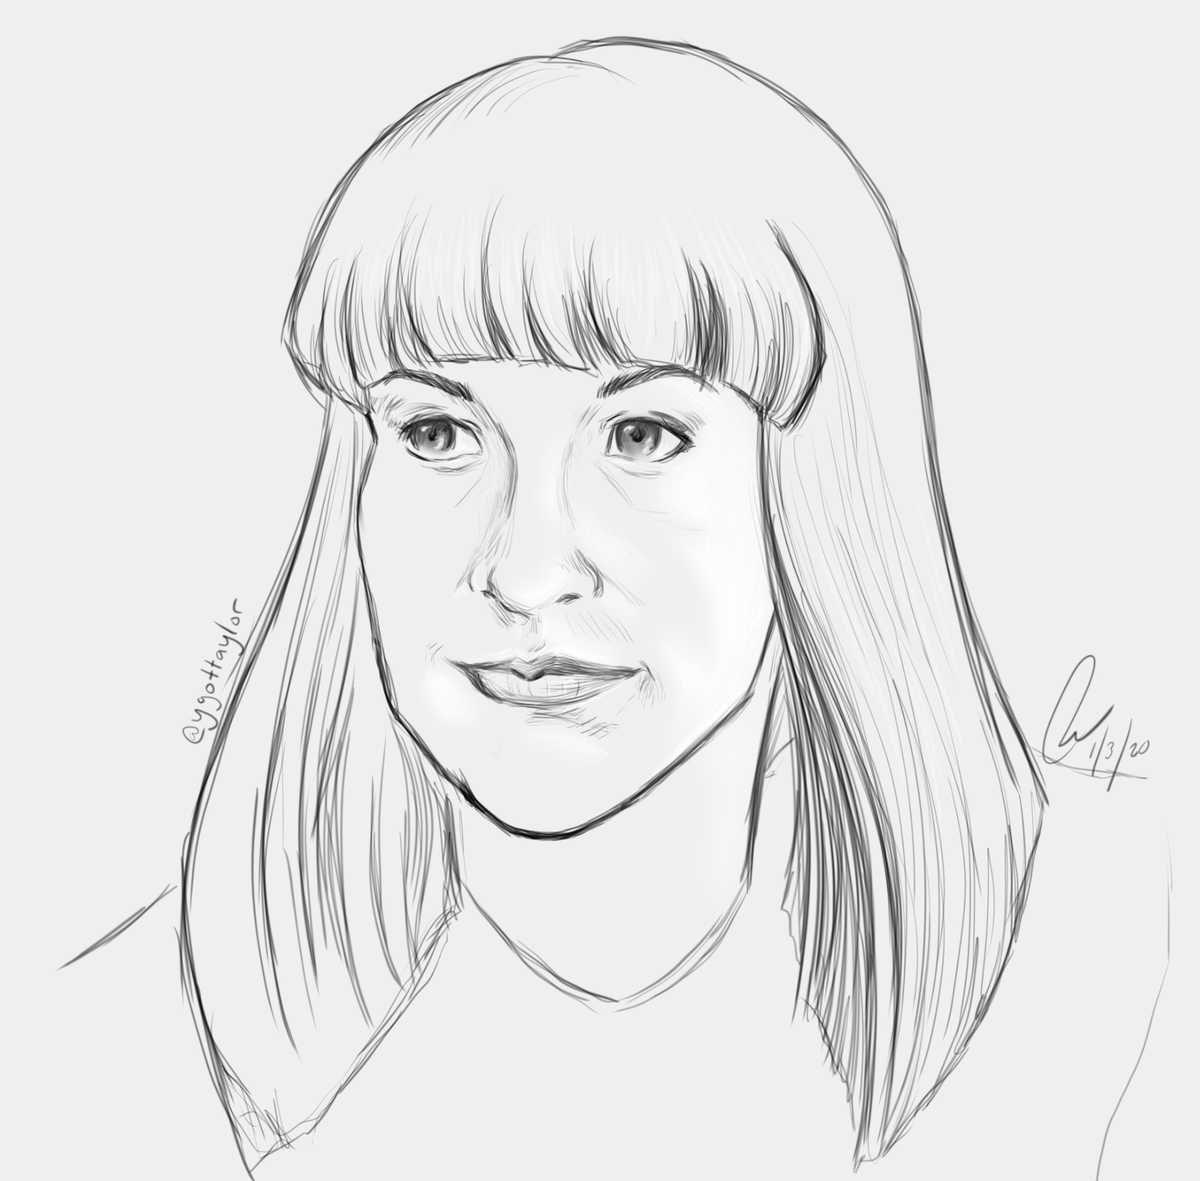 Another portrait - this time of @TheGoodDeath (Caitlin Doughty). Her work has really been inspiring and personally helped me in many ways - enjoyed her book #SmokeGetsInYourEyes very much (very much = I cried)! #art #facestudy #Caitindoughty #AskAMortician